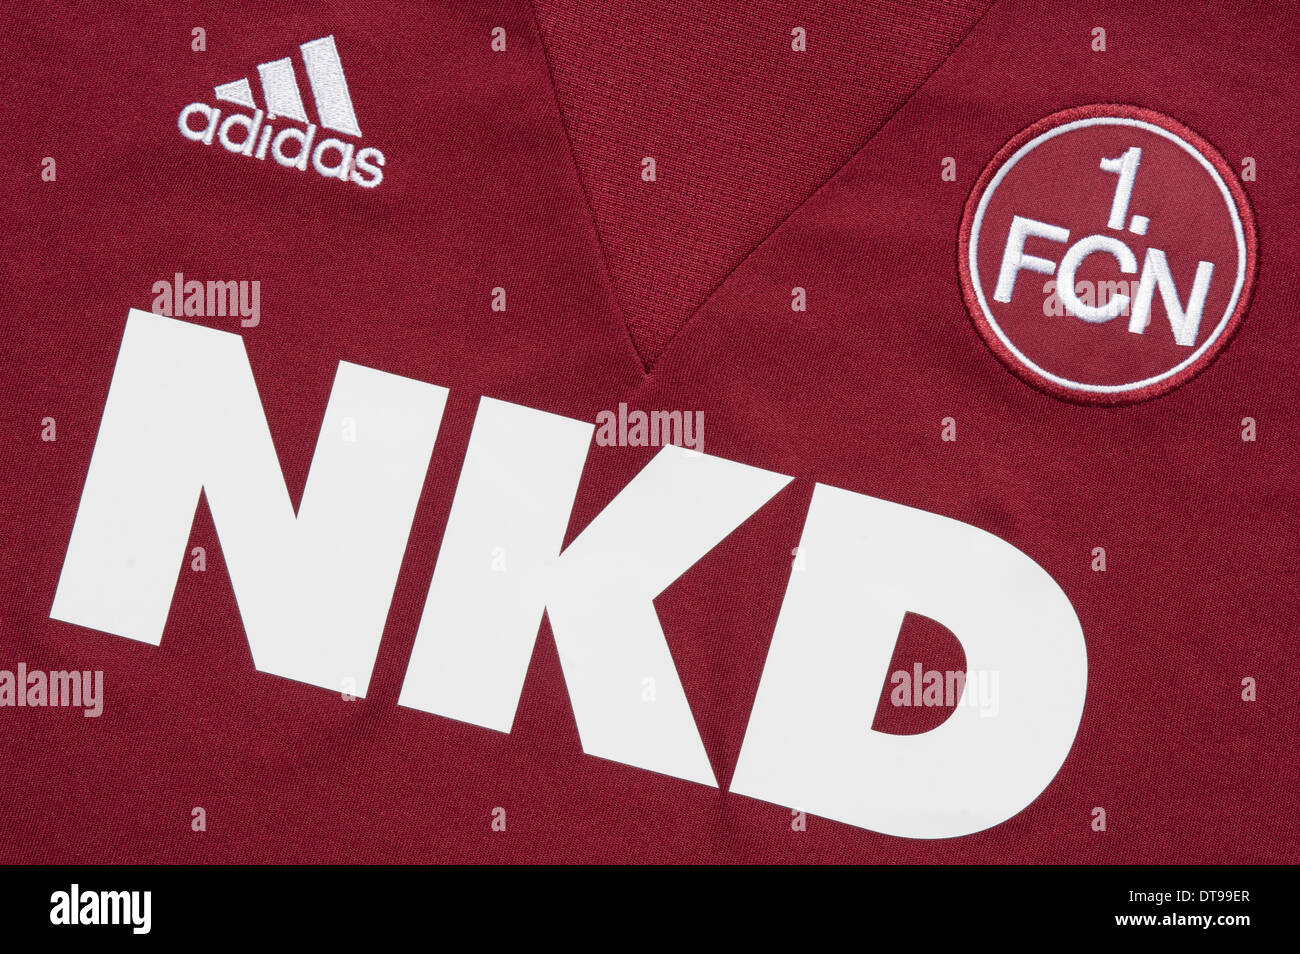 Close up of the FC Nürnberg football team kit - Stock Image